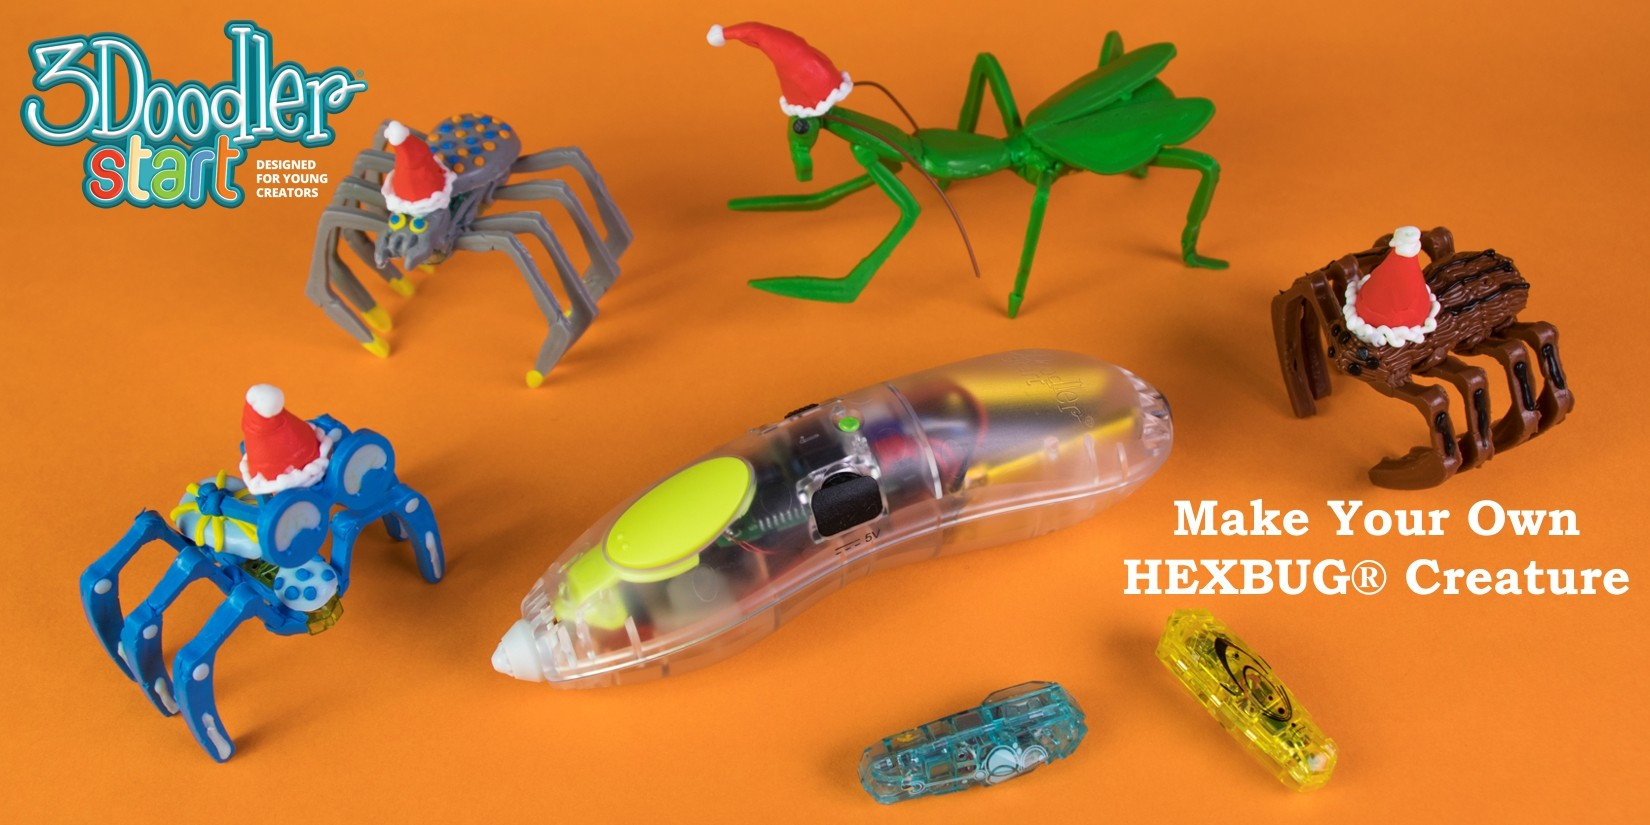 3Doodler Start Hexbug Creature